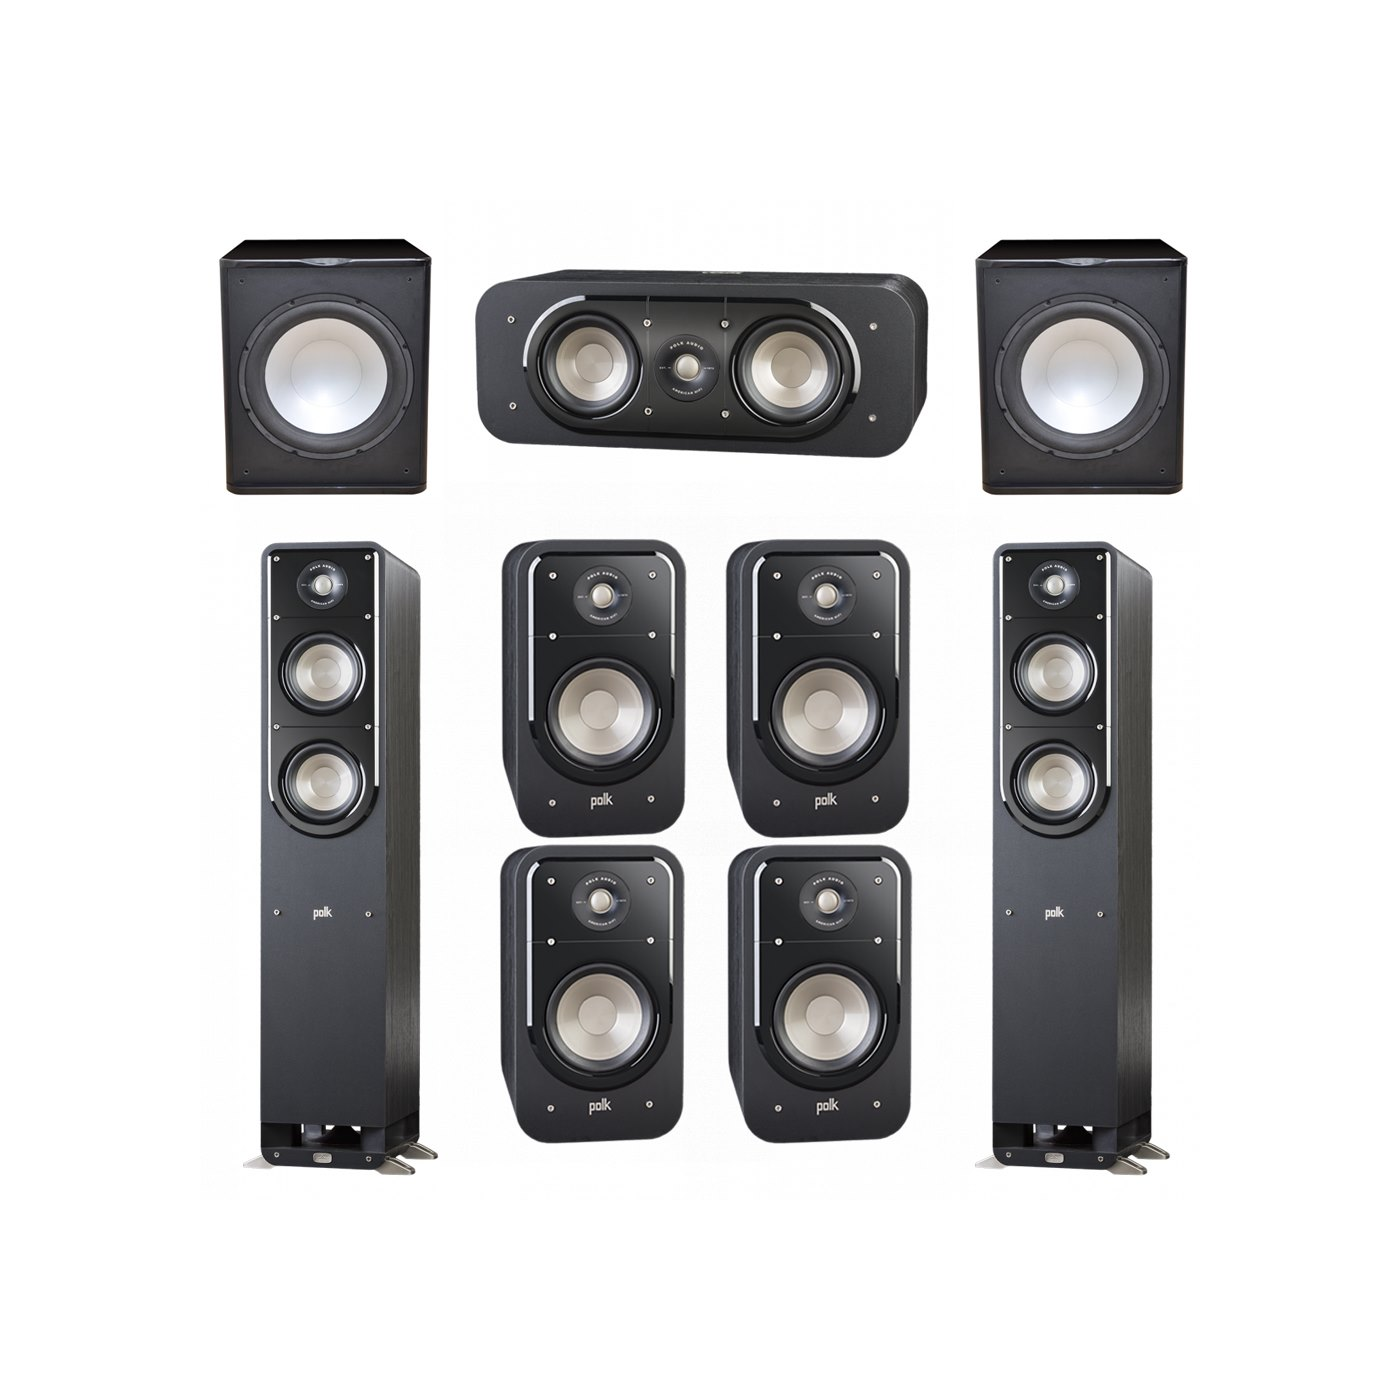 Polk Audio Signature 7.2 System with 2 S50 Tower Speaker, 1 Polk S30 Center Speaker, 4 Polk S20 Bookshelf Speaker, 2 Premier Acoustic PA-150 Powered Subwoofer